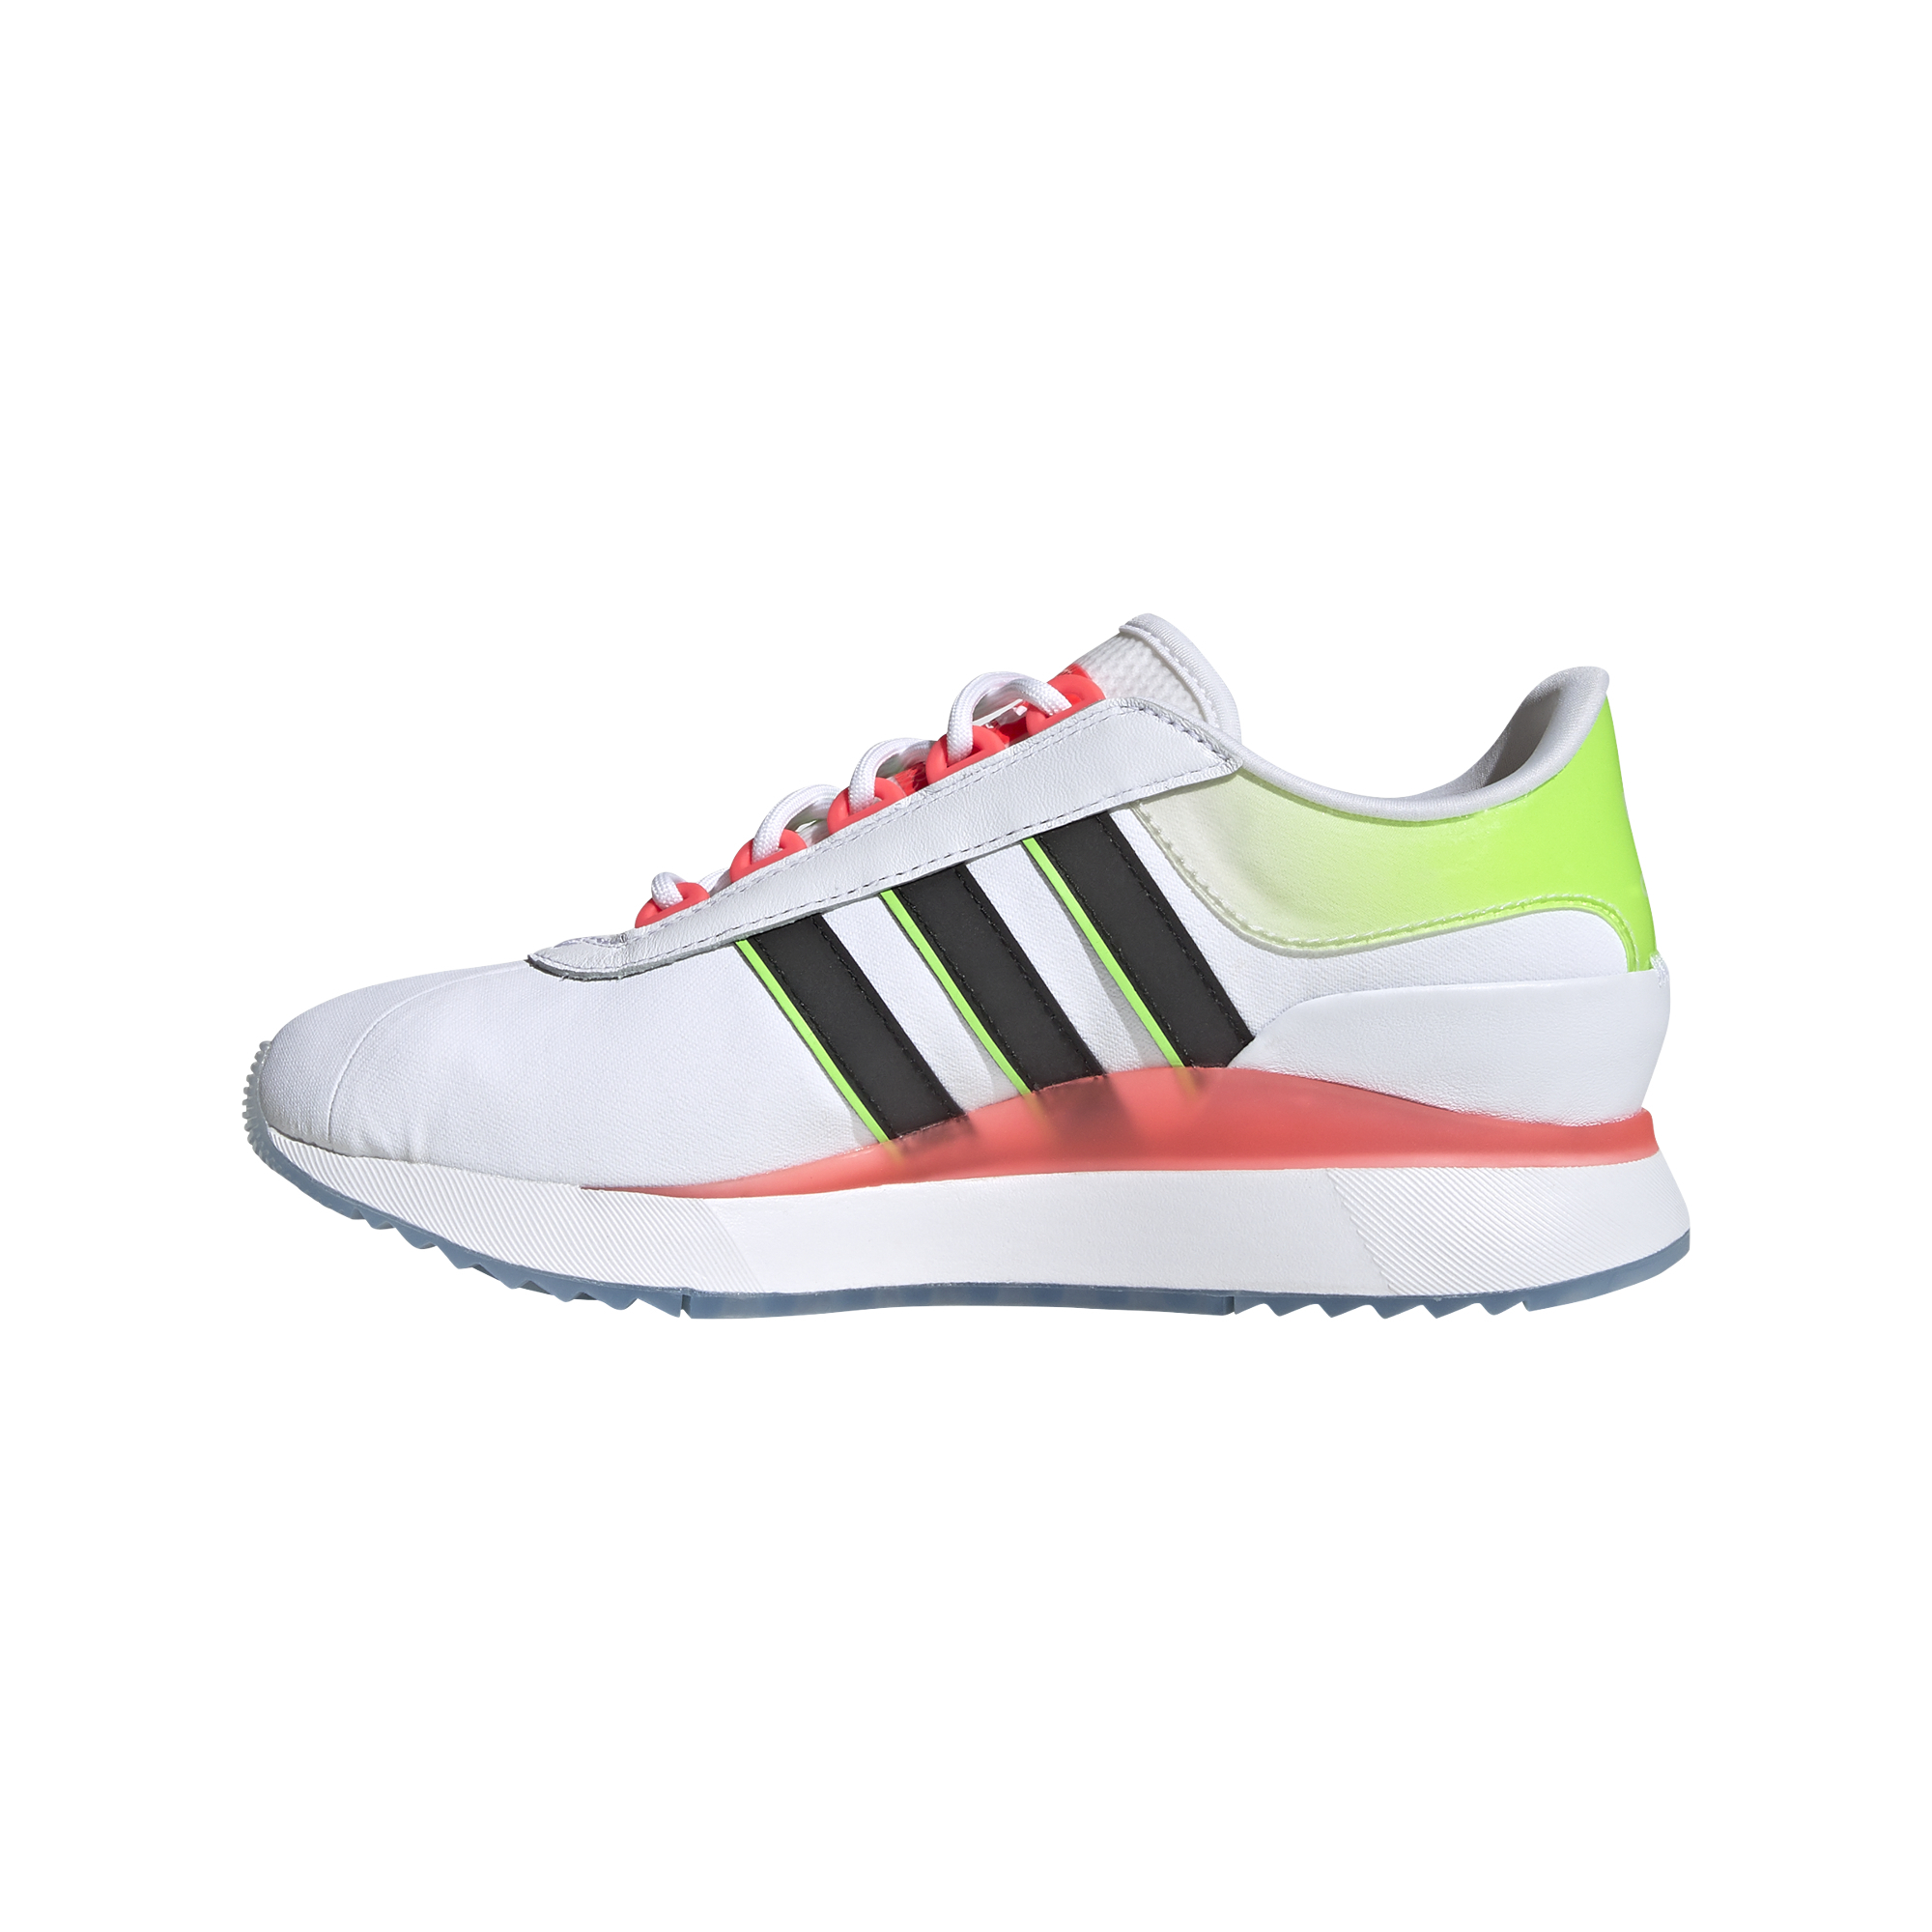 adidas SL Andridge W Ftw White/ Core Black/ Signature Pink FY6964